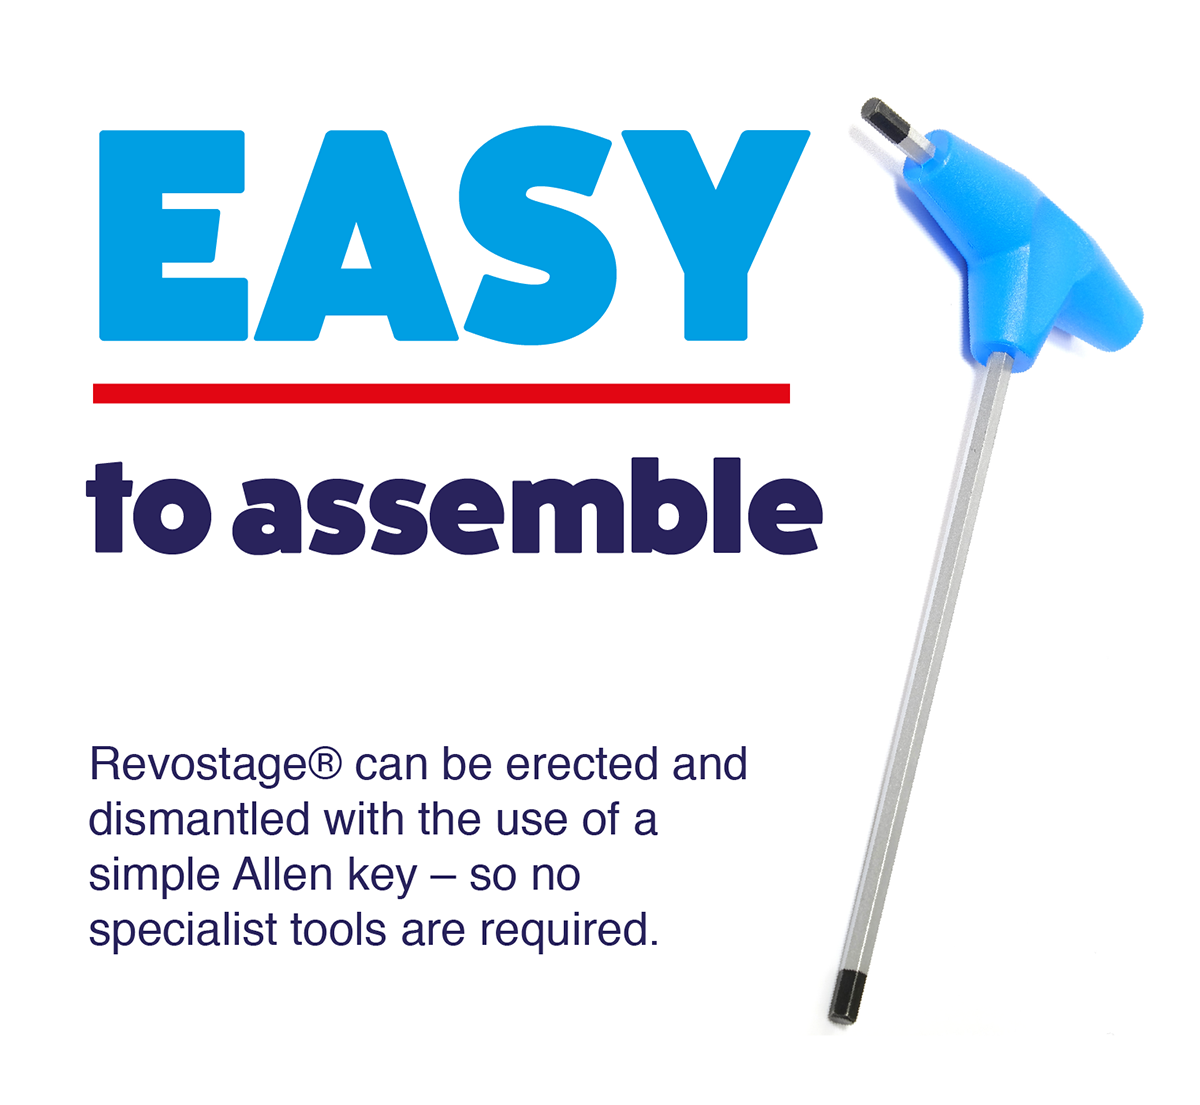 Revostage is easy to assemble